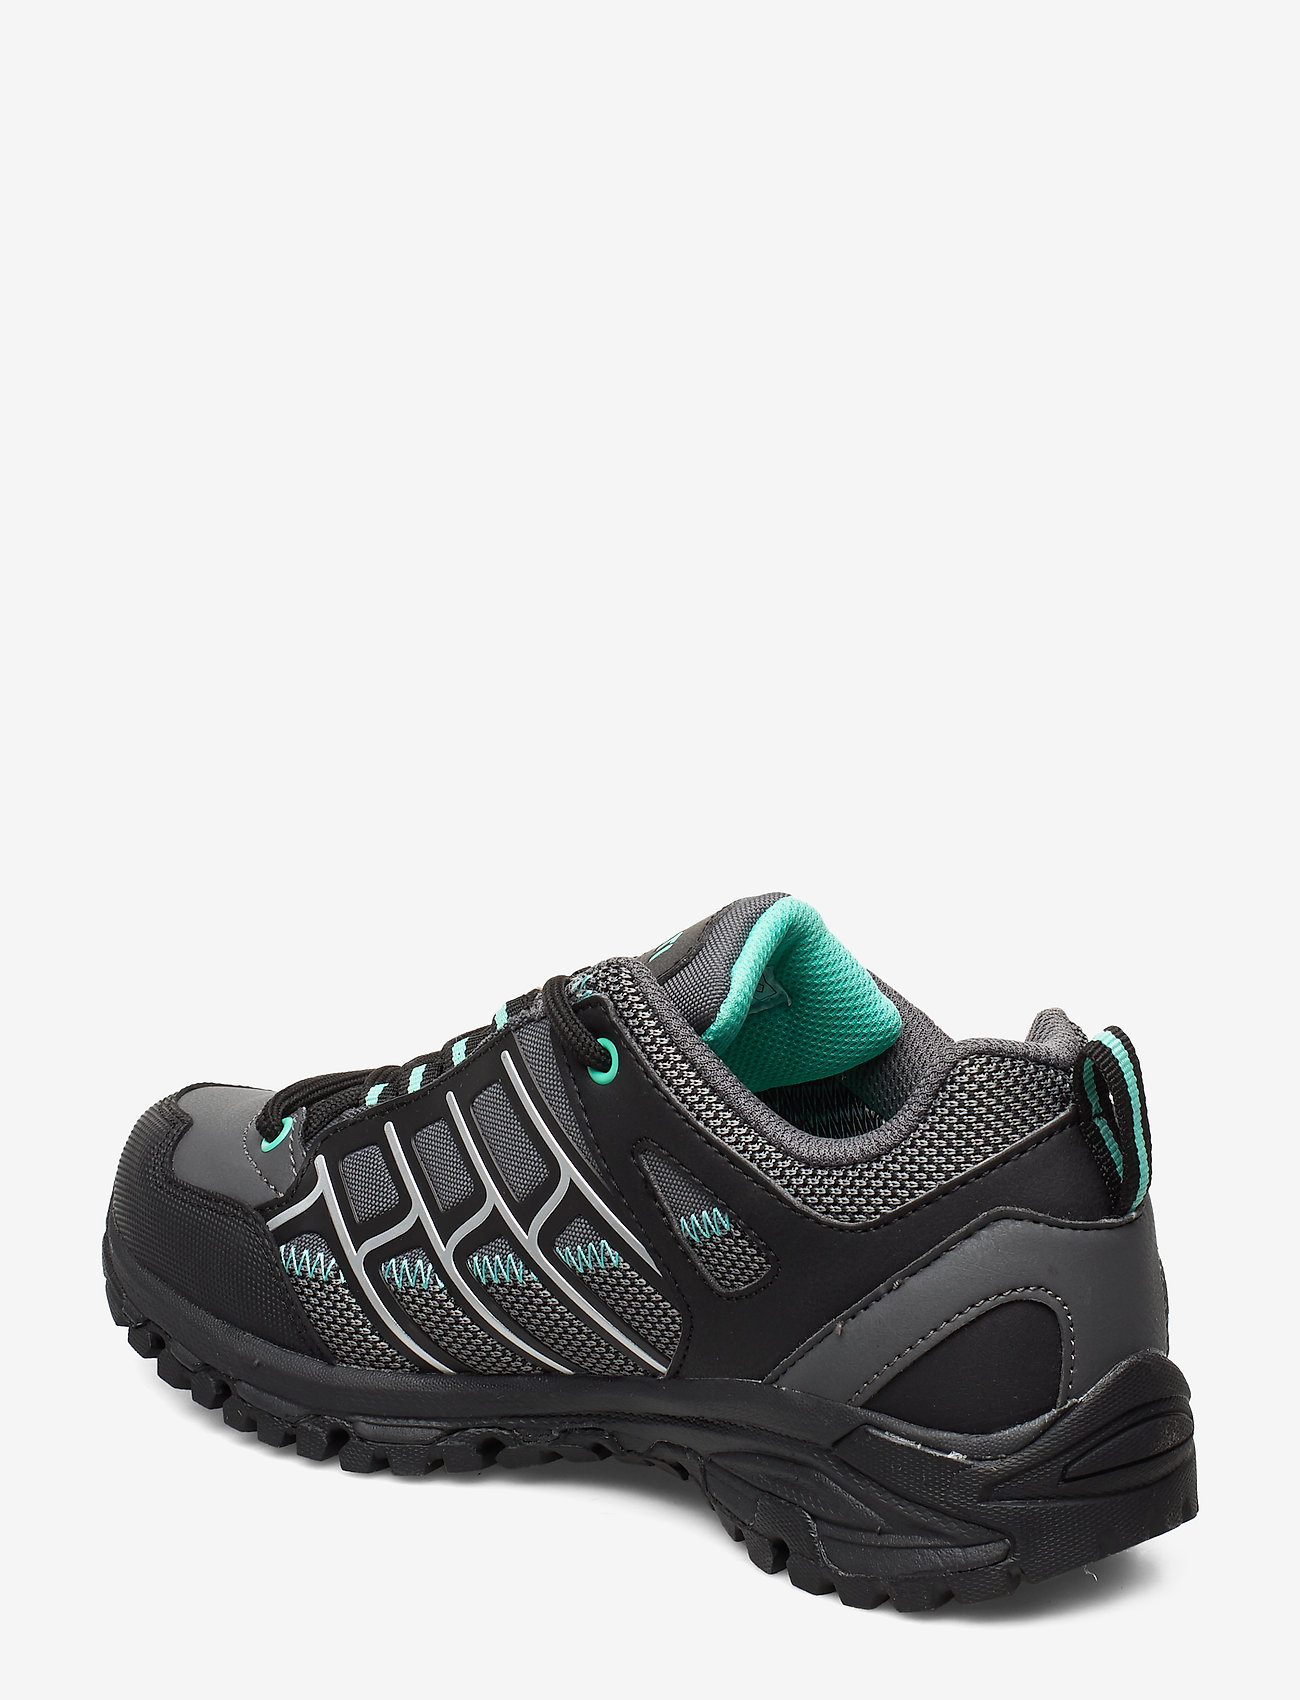 Roto Low Dx W Trekking Shoe (Folkstone Grey) - Halti